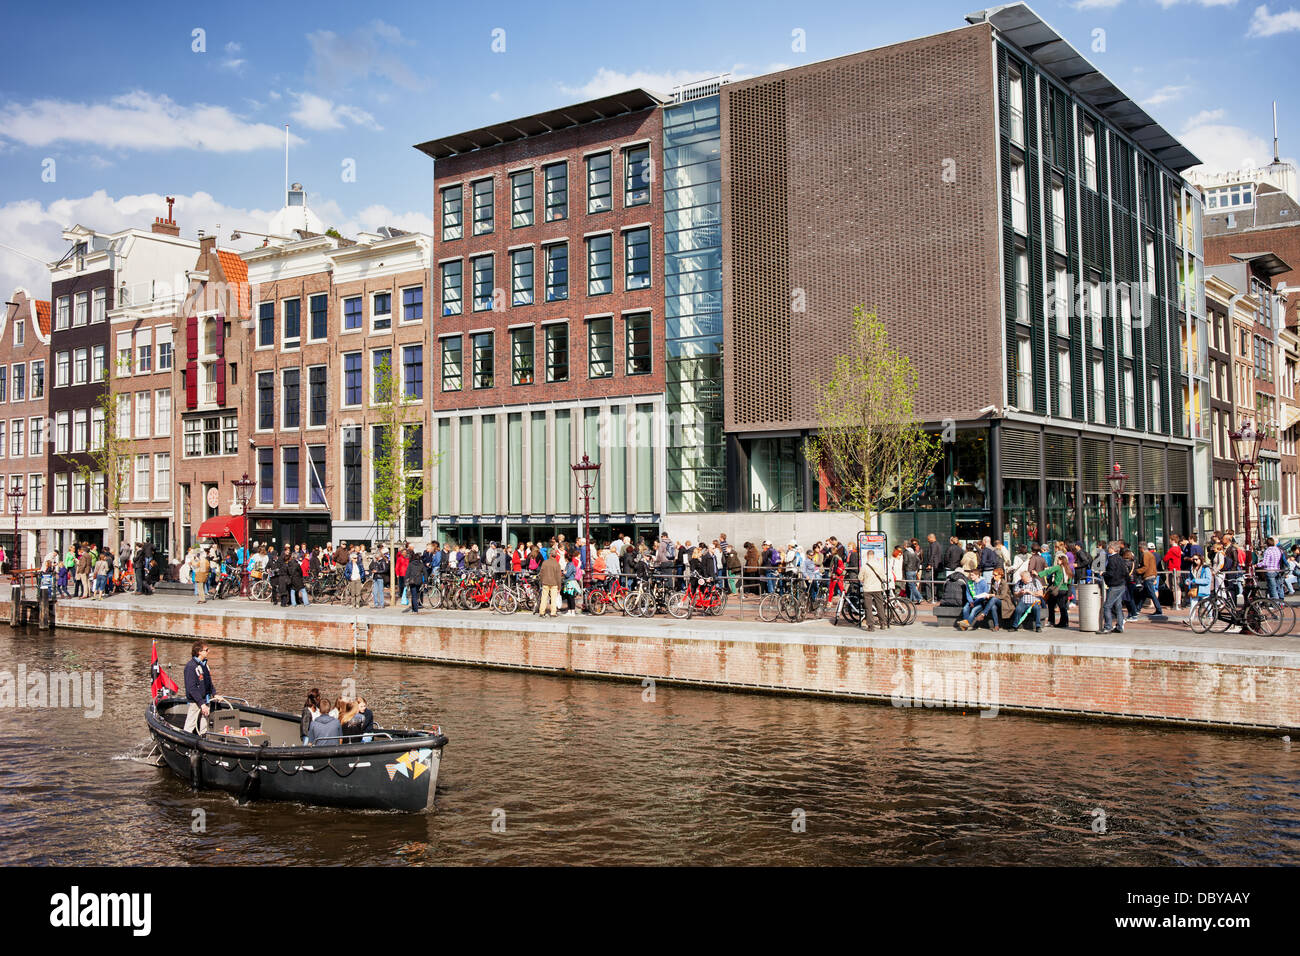 People waiting in line to the Anne Frank House museum, Prinsengracht canal, Holland, Netherlands. - Stock Image